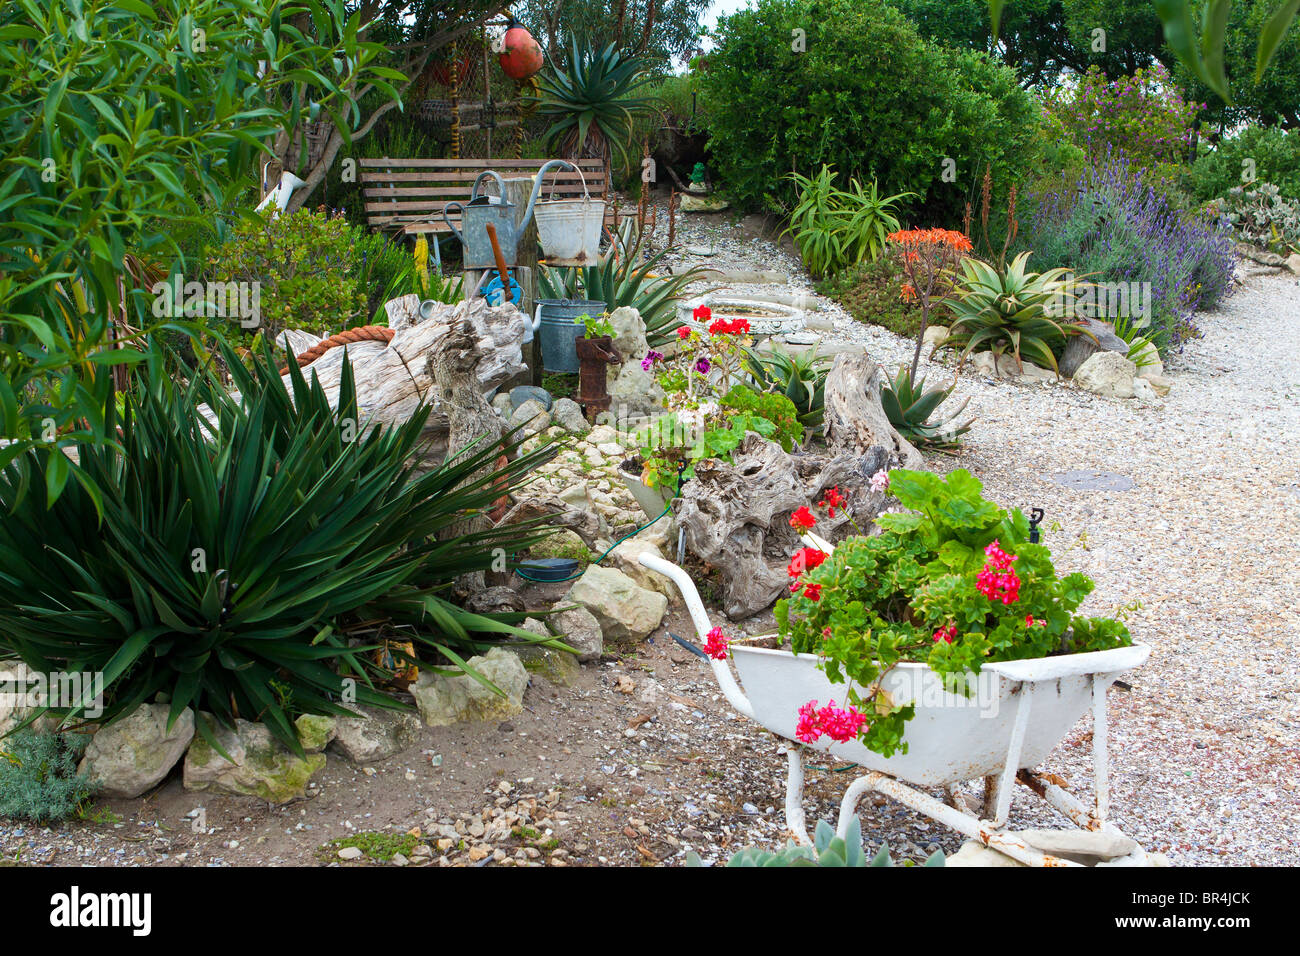 Picturesque Garden In Paternoster A Small Town The West Coast Of